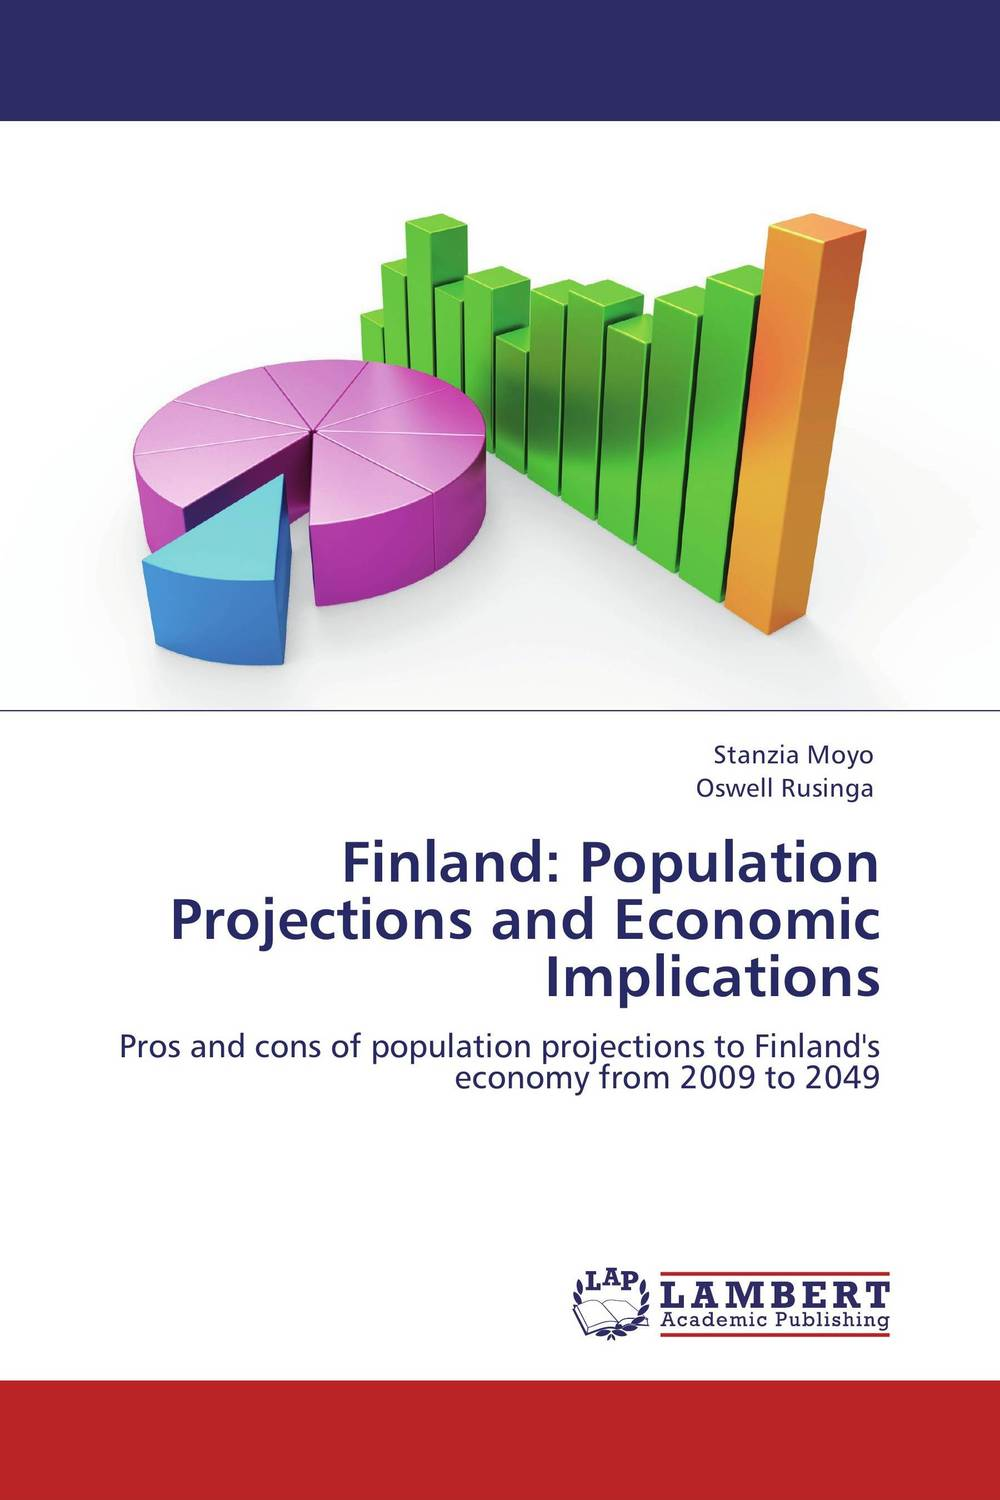 Finland: Population Projections and Economic Implications from panamax to panamix